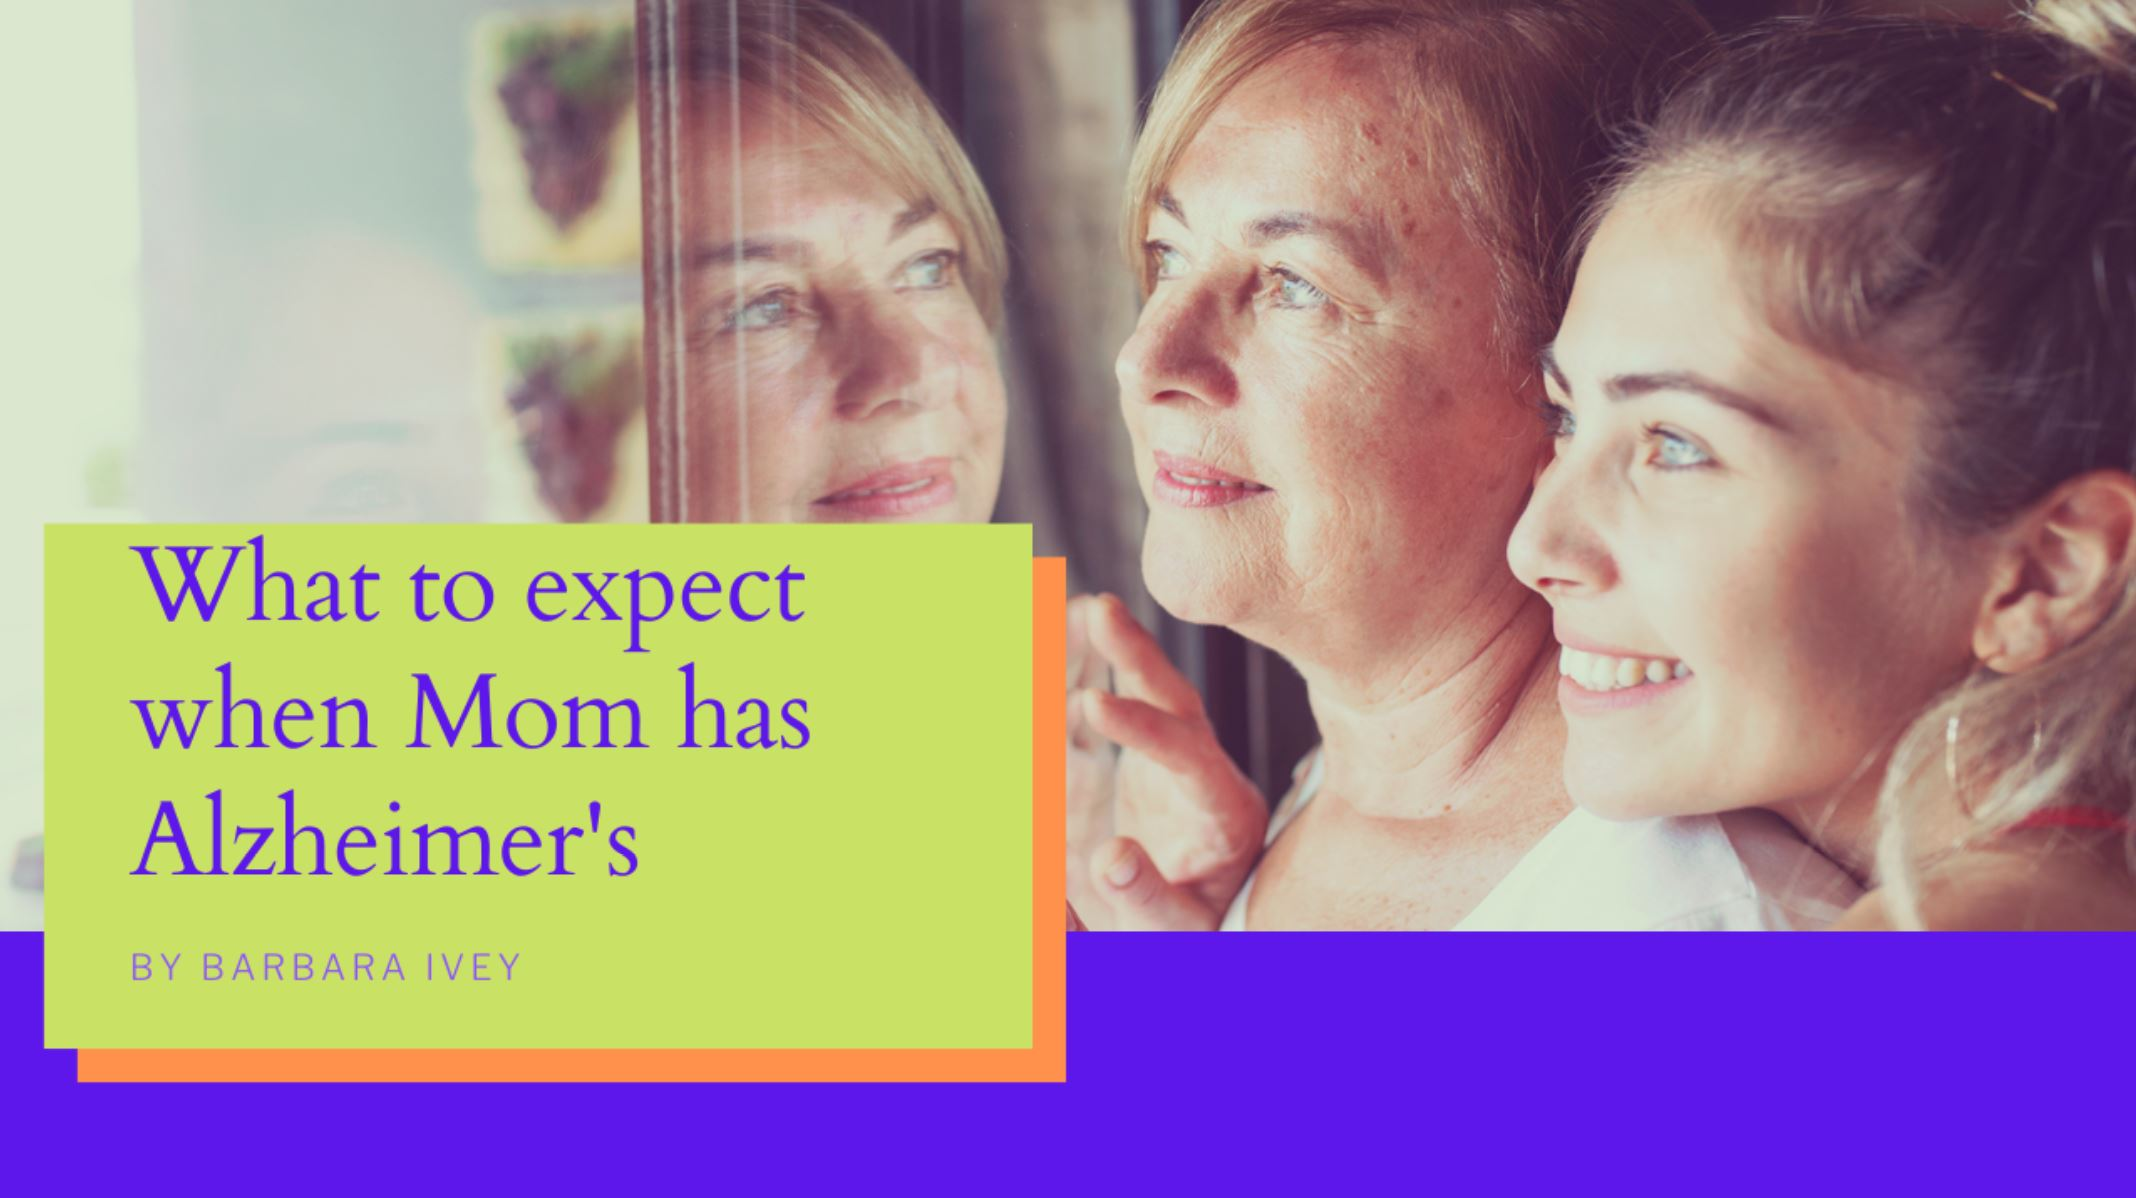 What to expect when Mom has Alzheimer's